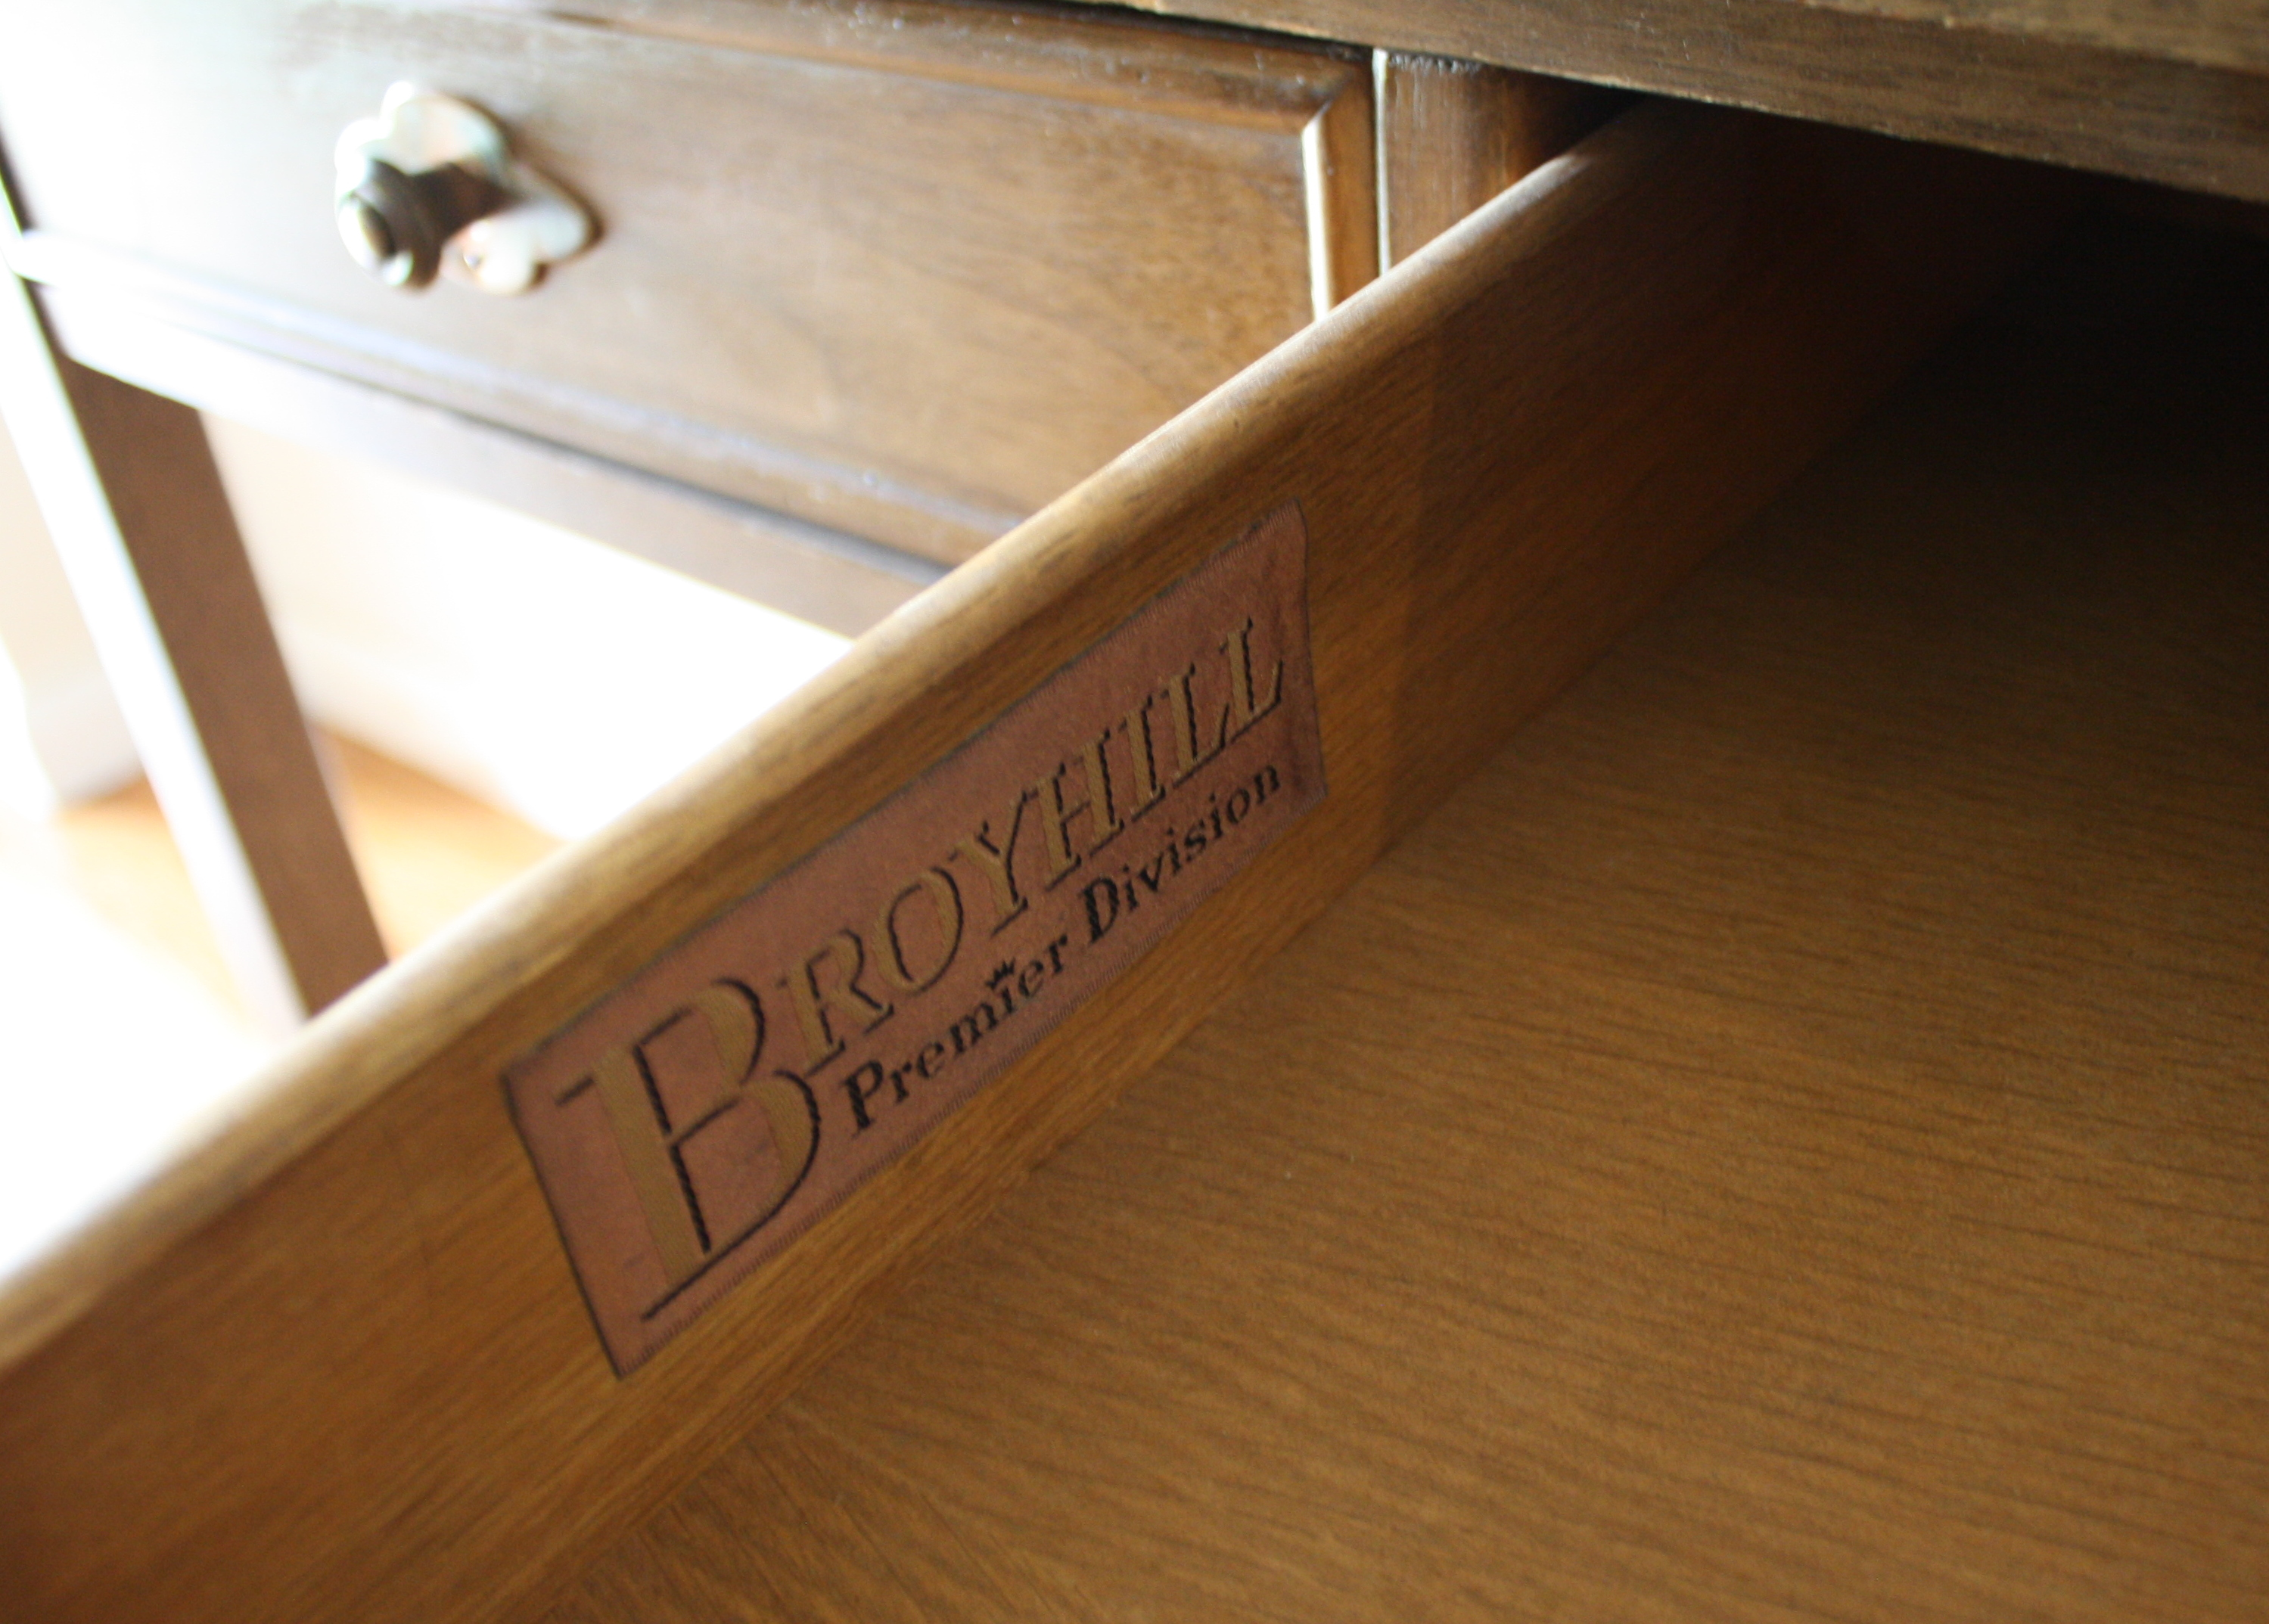 Mid Century Modern Serving Bar Cart From Broyhill Premier Collection |  Picked Vintage